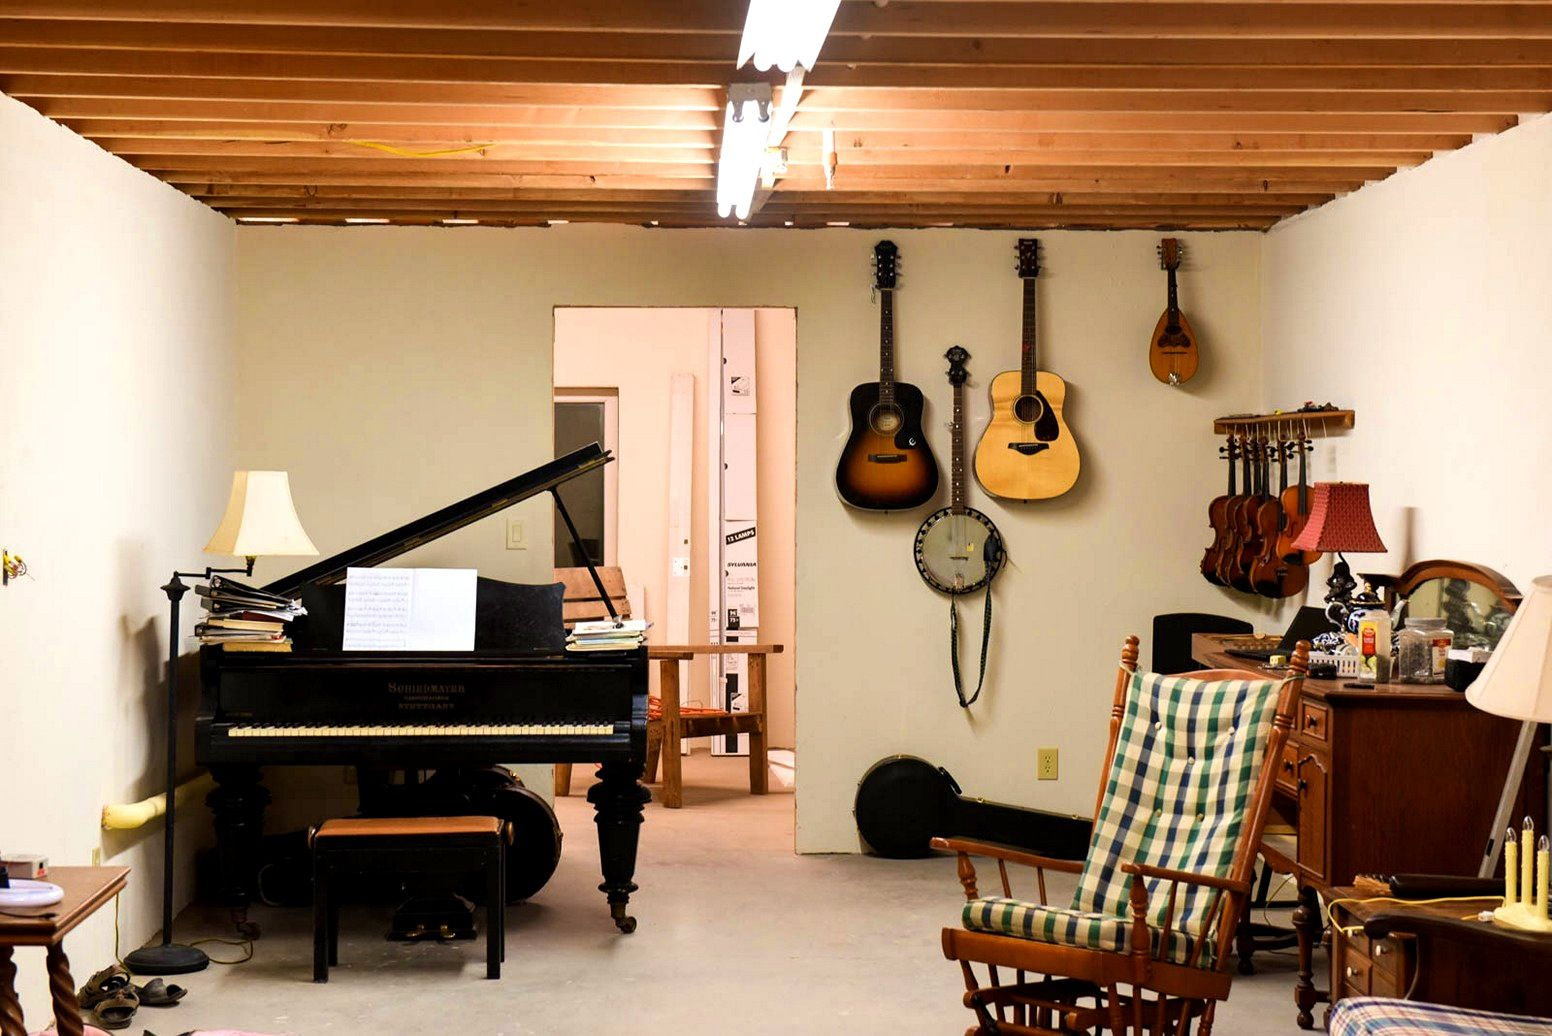 Bedroom Splendid Cool Music Room Ideas For Your Hobbies Themed Home Music Rooms Music Room Decor Home Studio Music